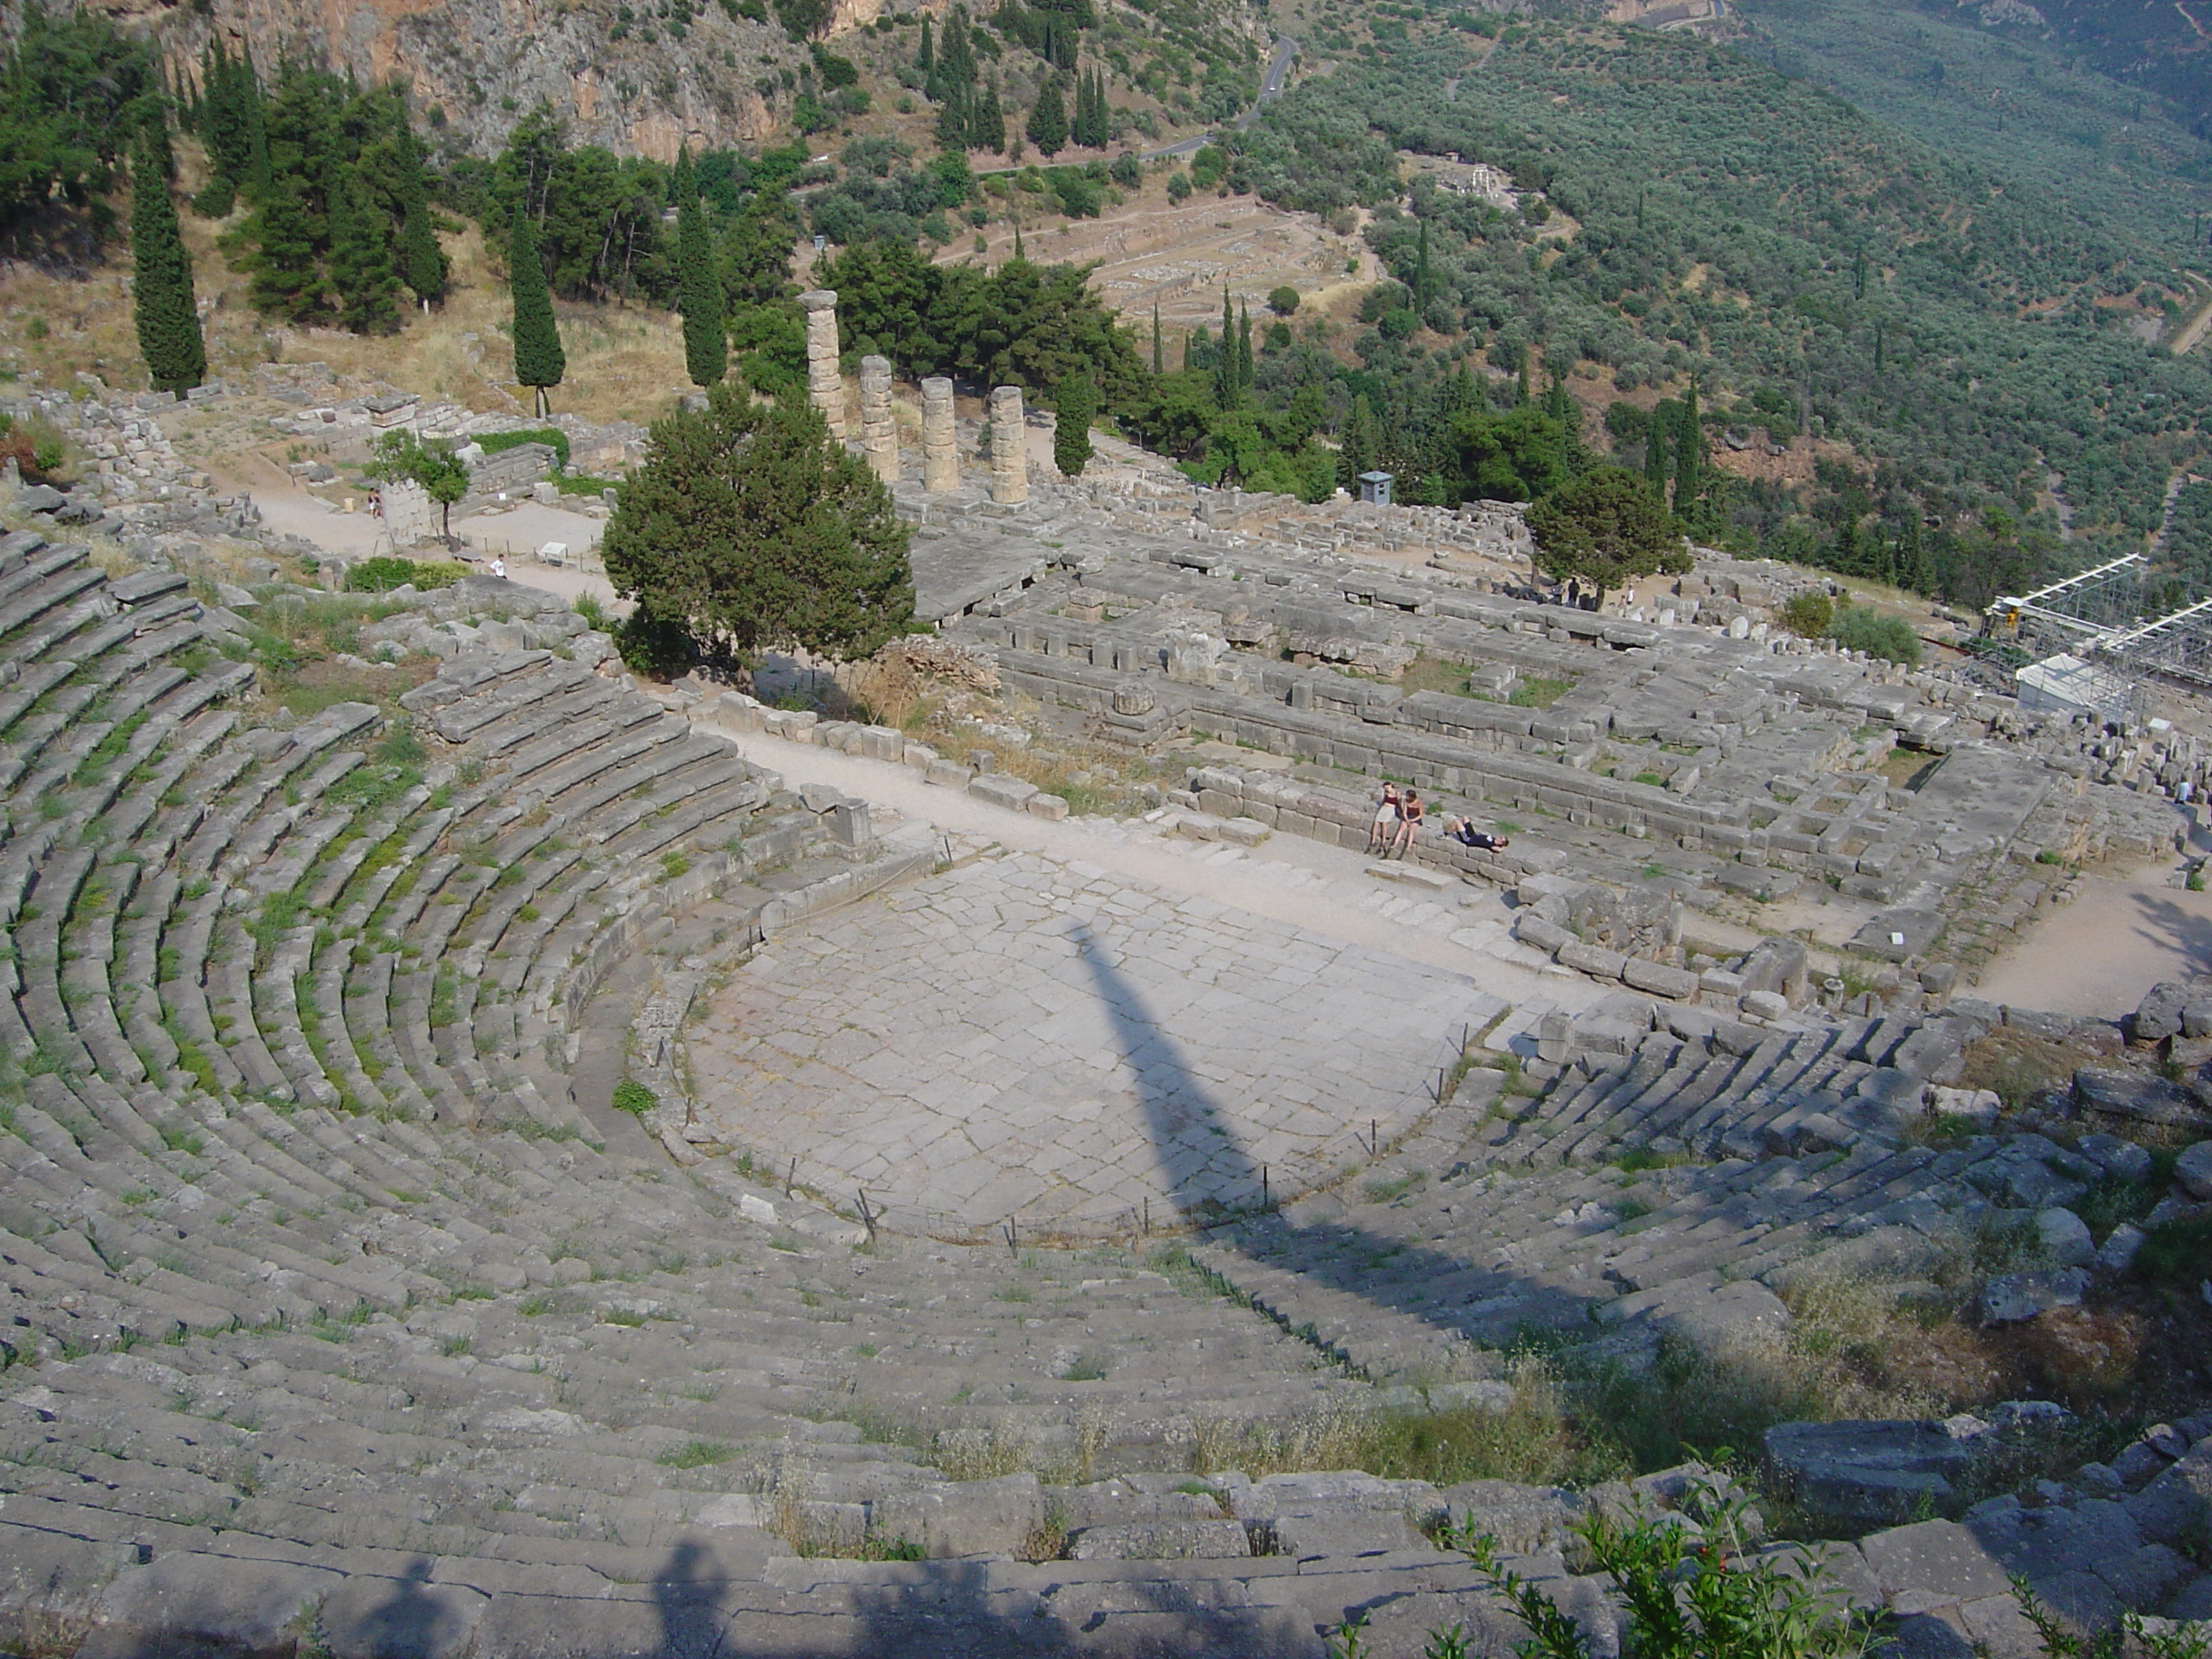 A Greek amphitheatre